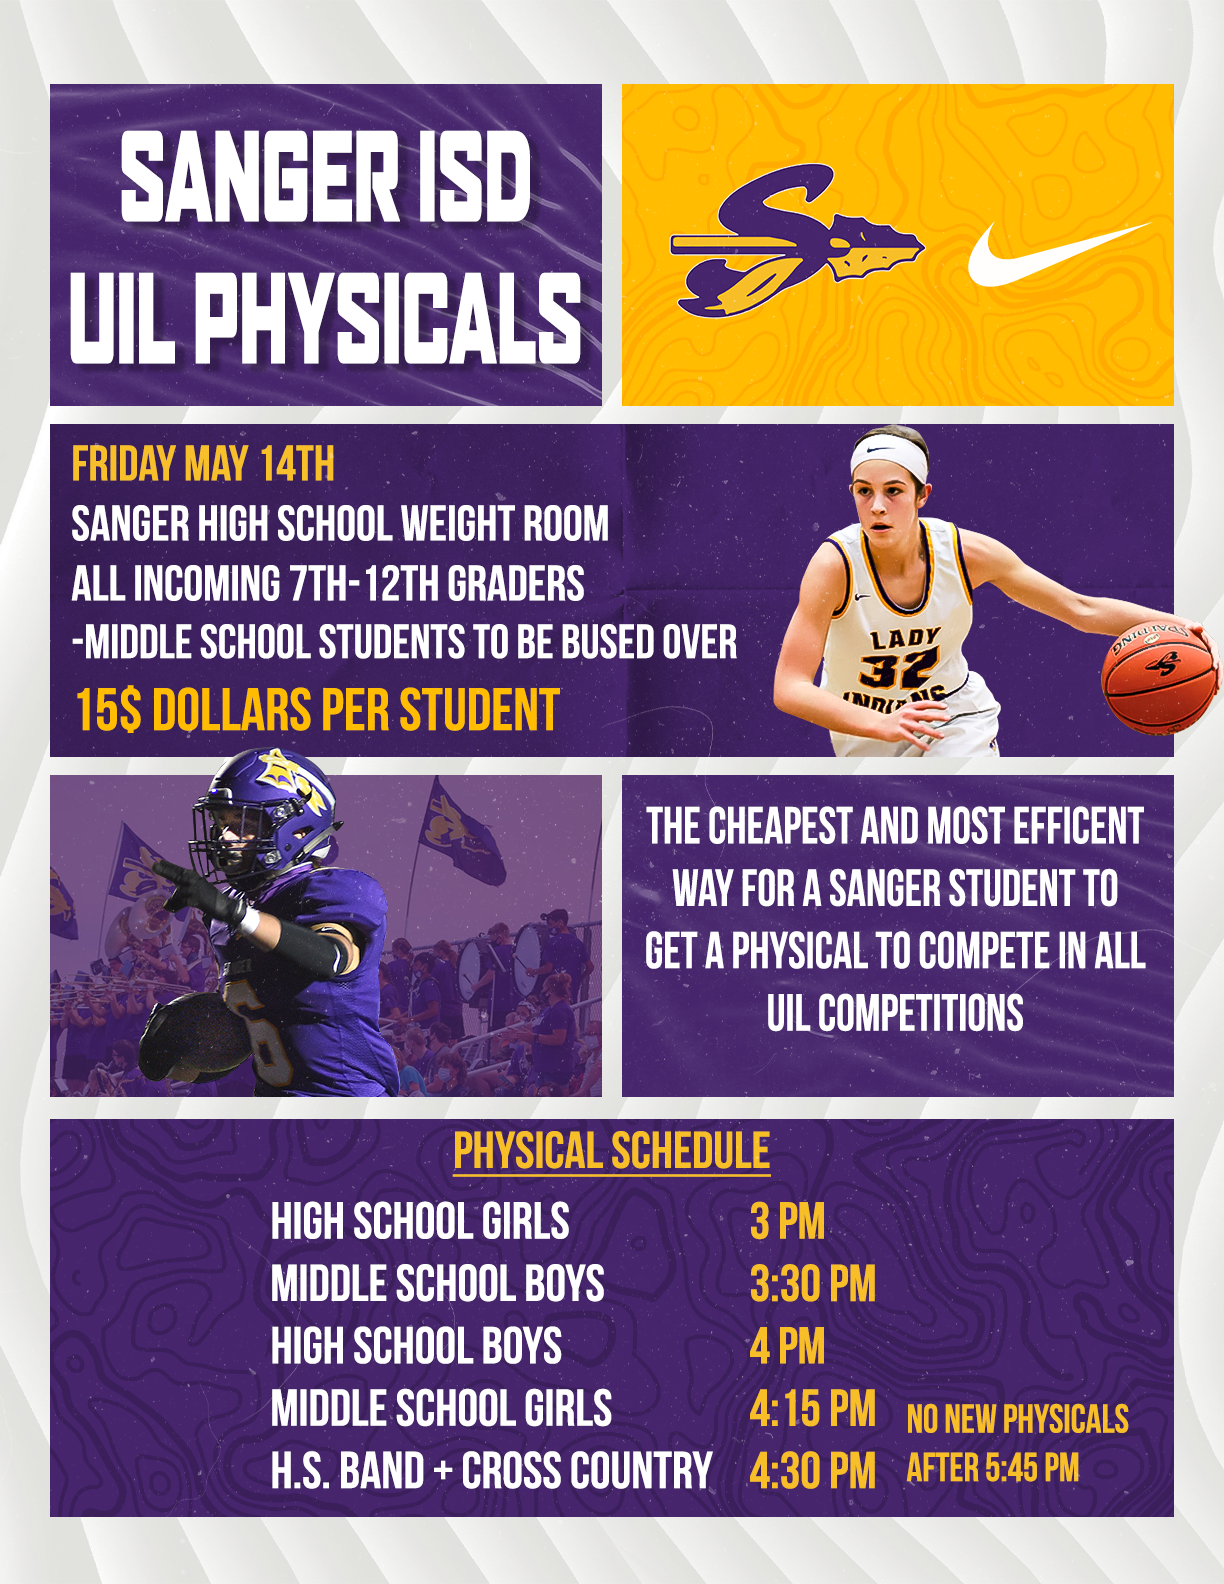 Sanger ISD Physicals on May 14th